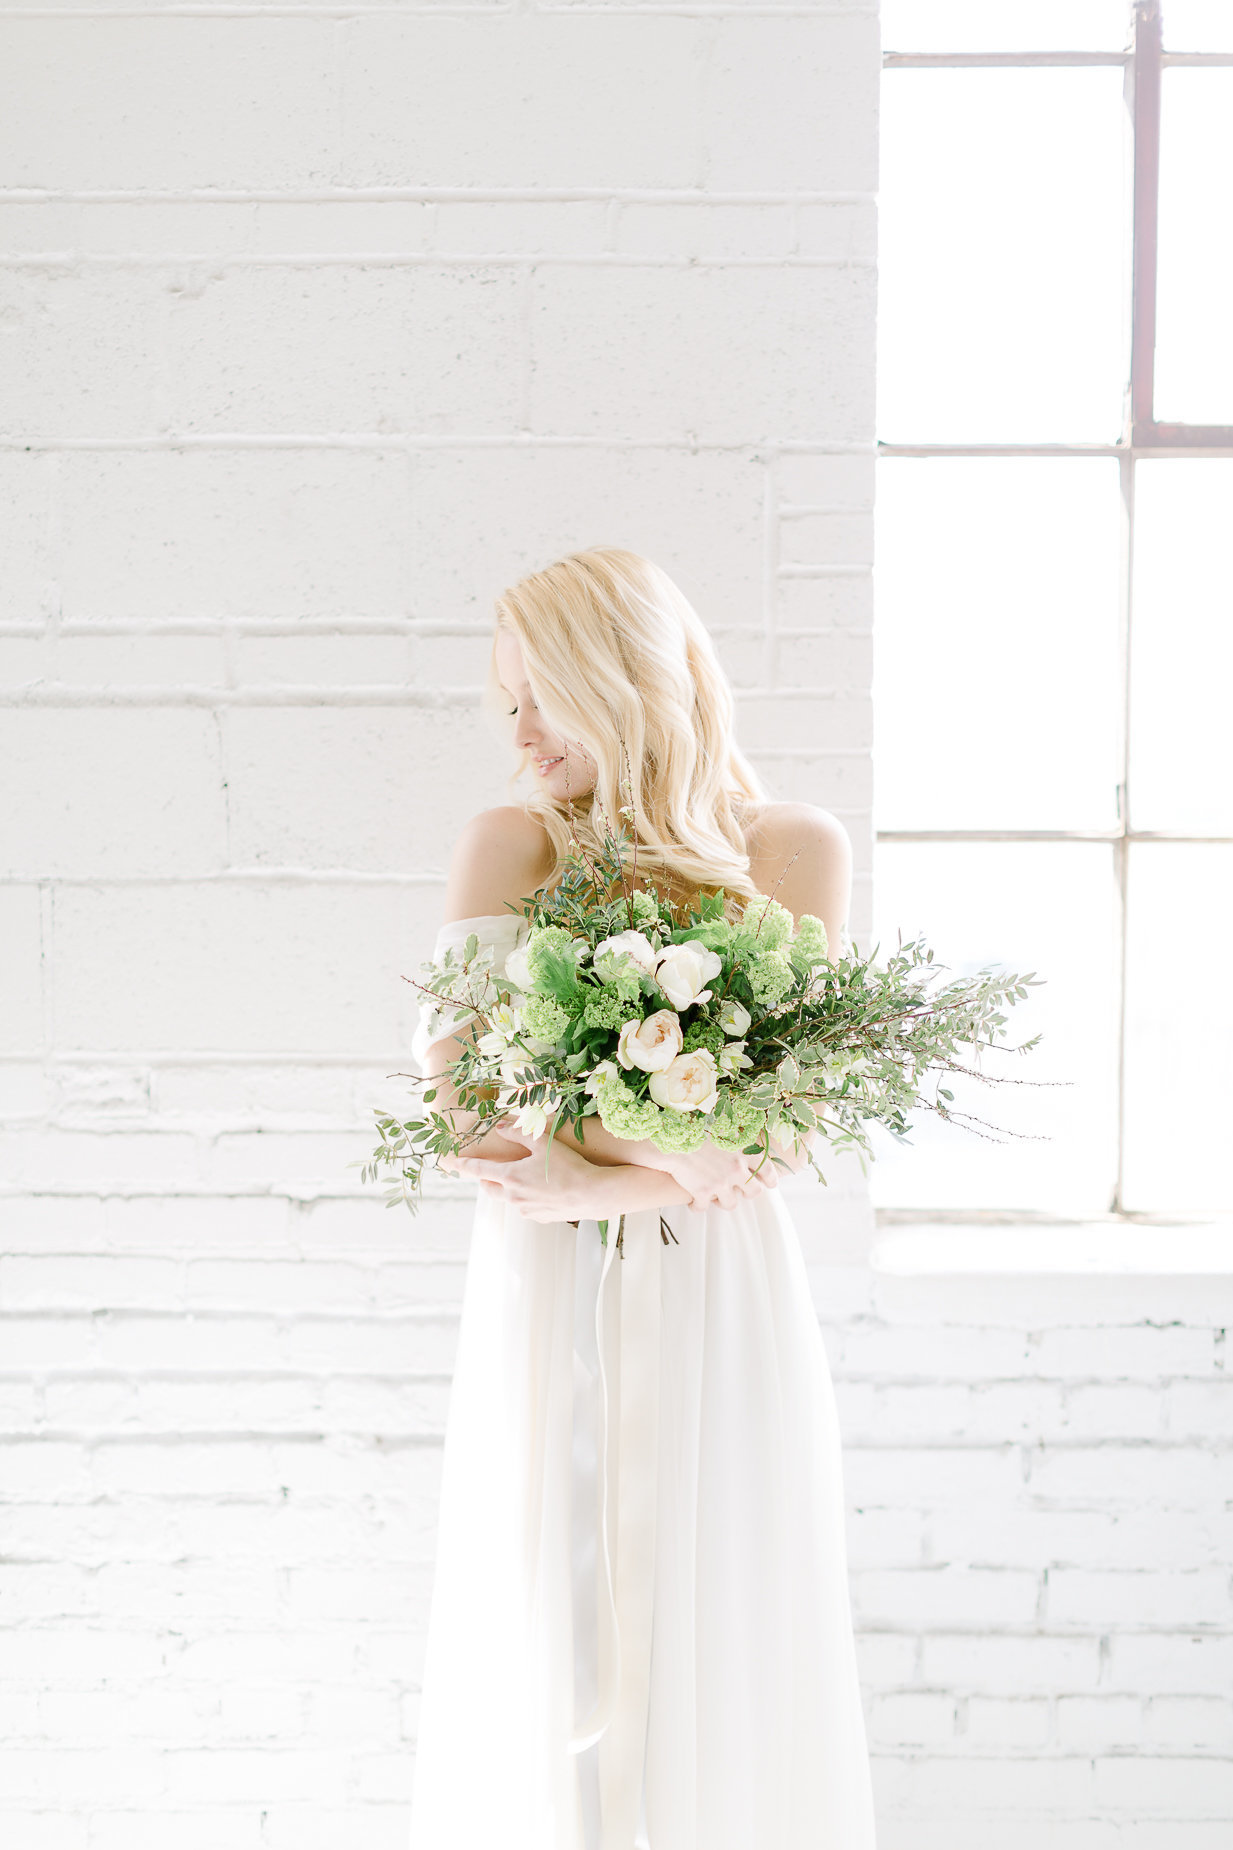 industrial-chic-and-organic-wedding-inspiration-lisa-renault-photographie-photographe-mariage-montreal-photographer-22